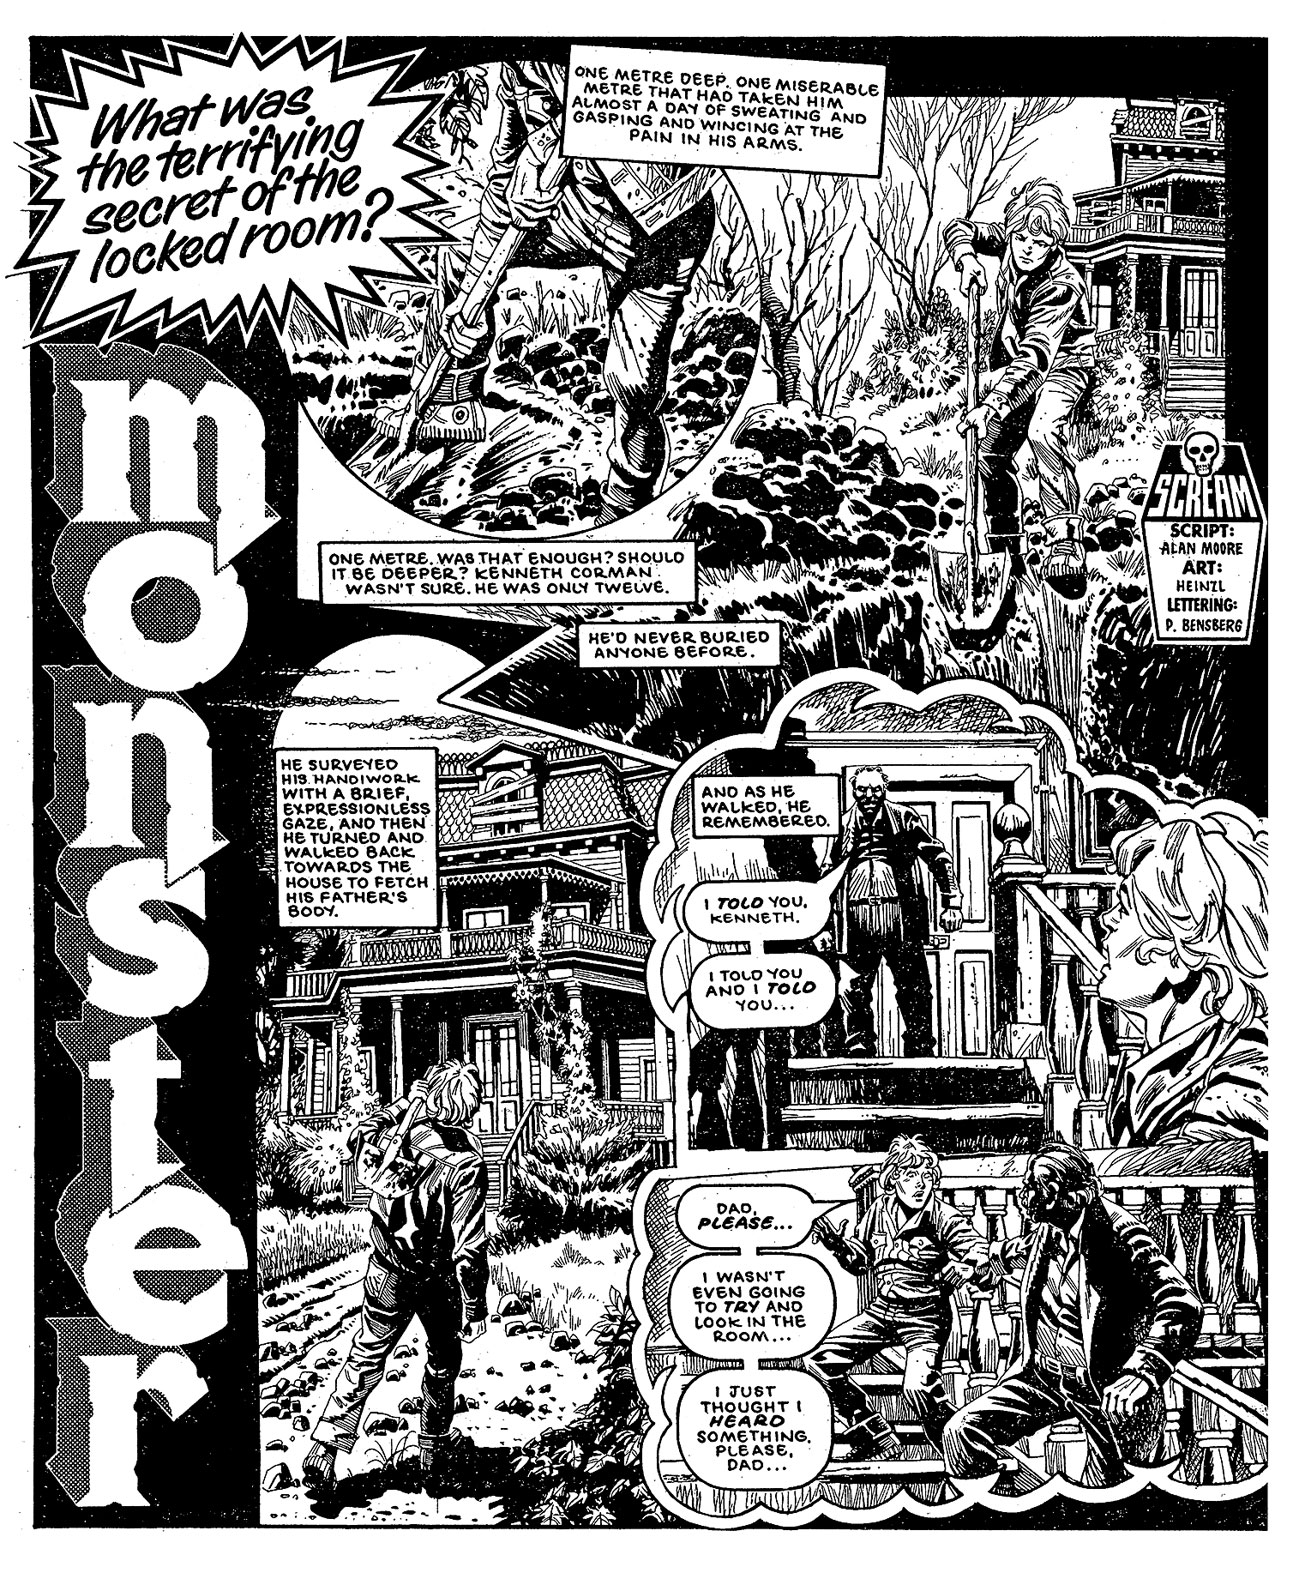 Monster-Scream 1-01